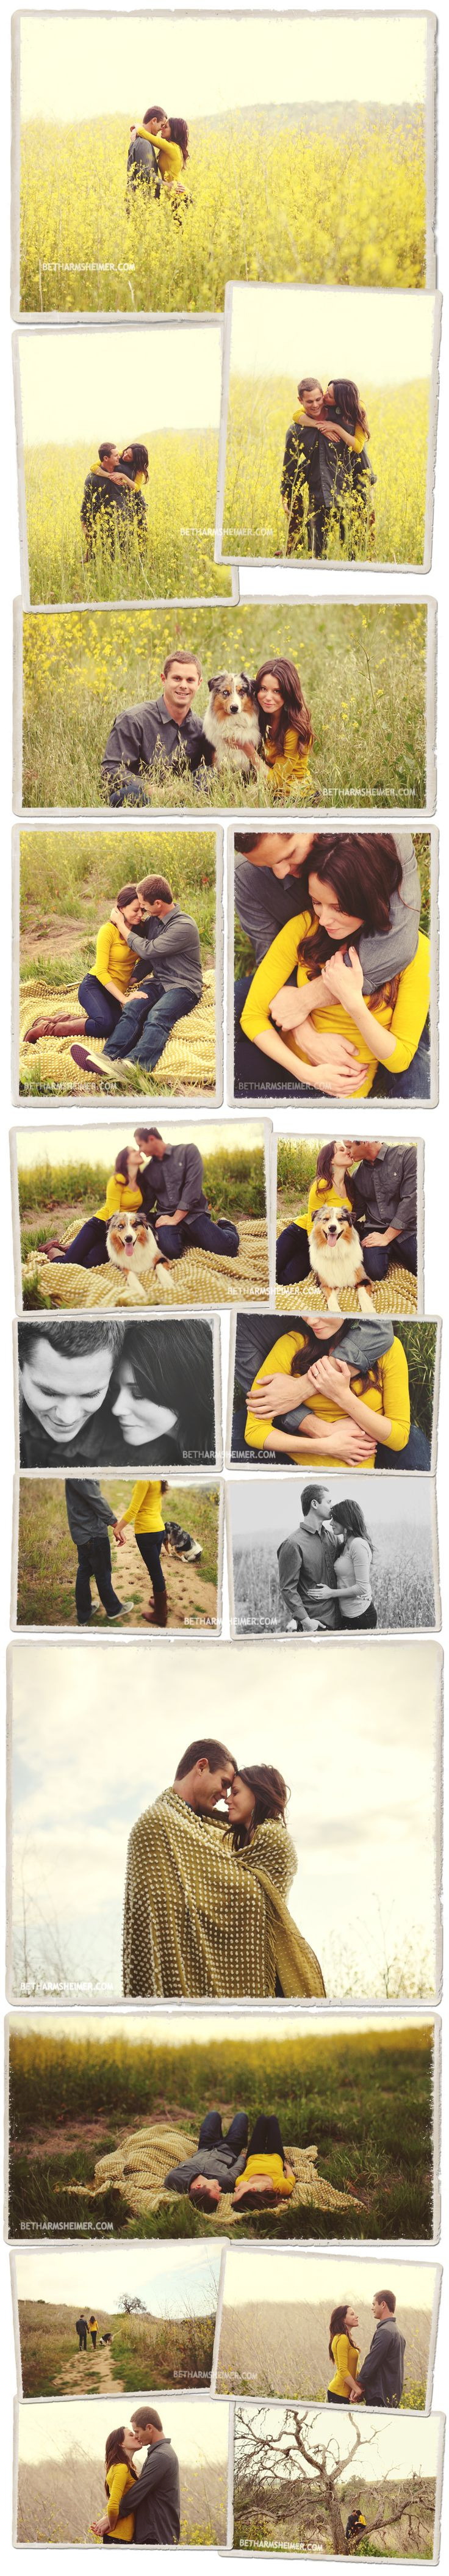 Love these pictures... great couple shots